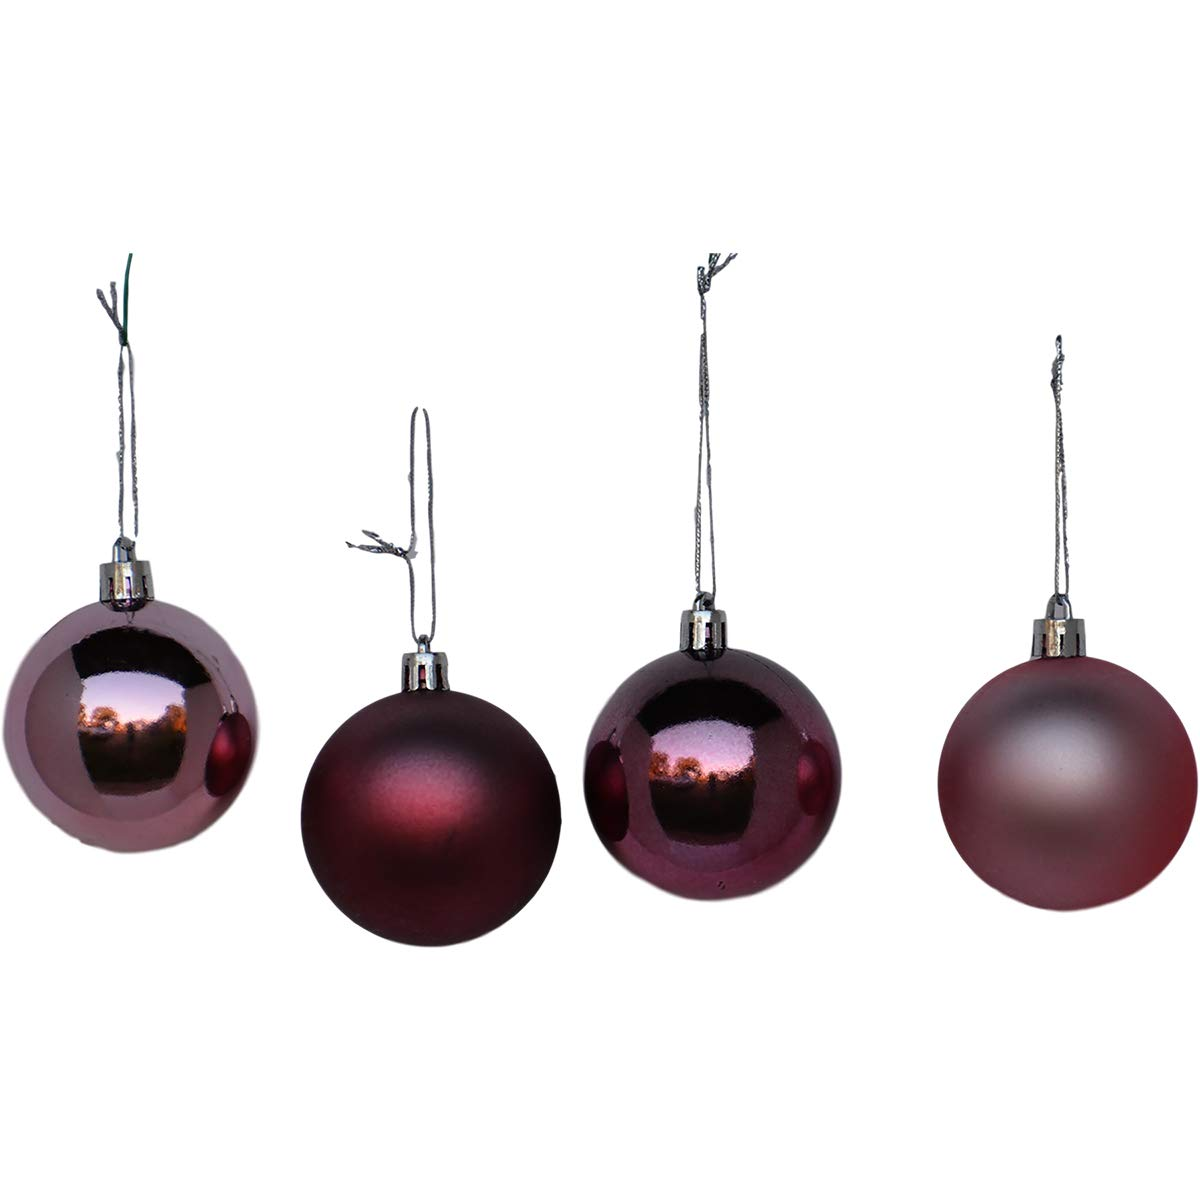 Rose Gold Christmas Balls Ornaments Pack Of 30 Premium Quality Shatterproof